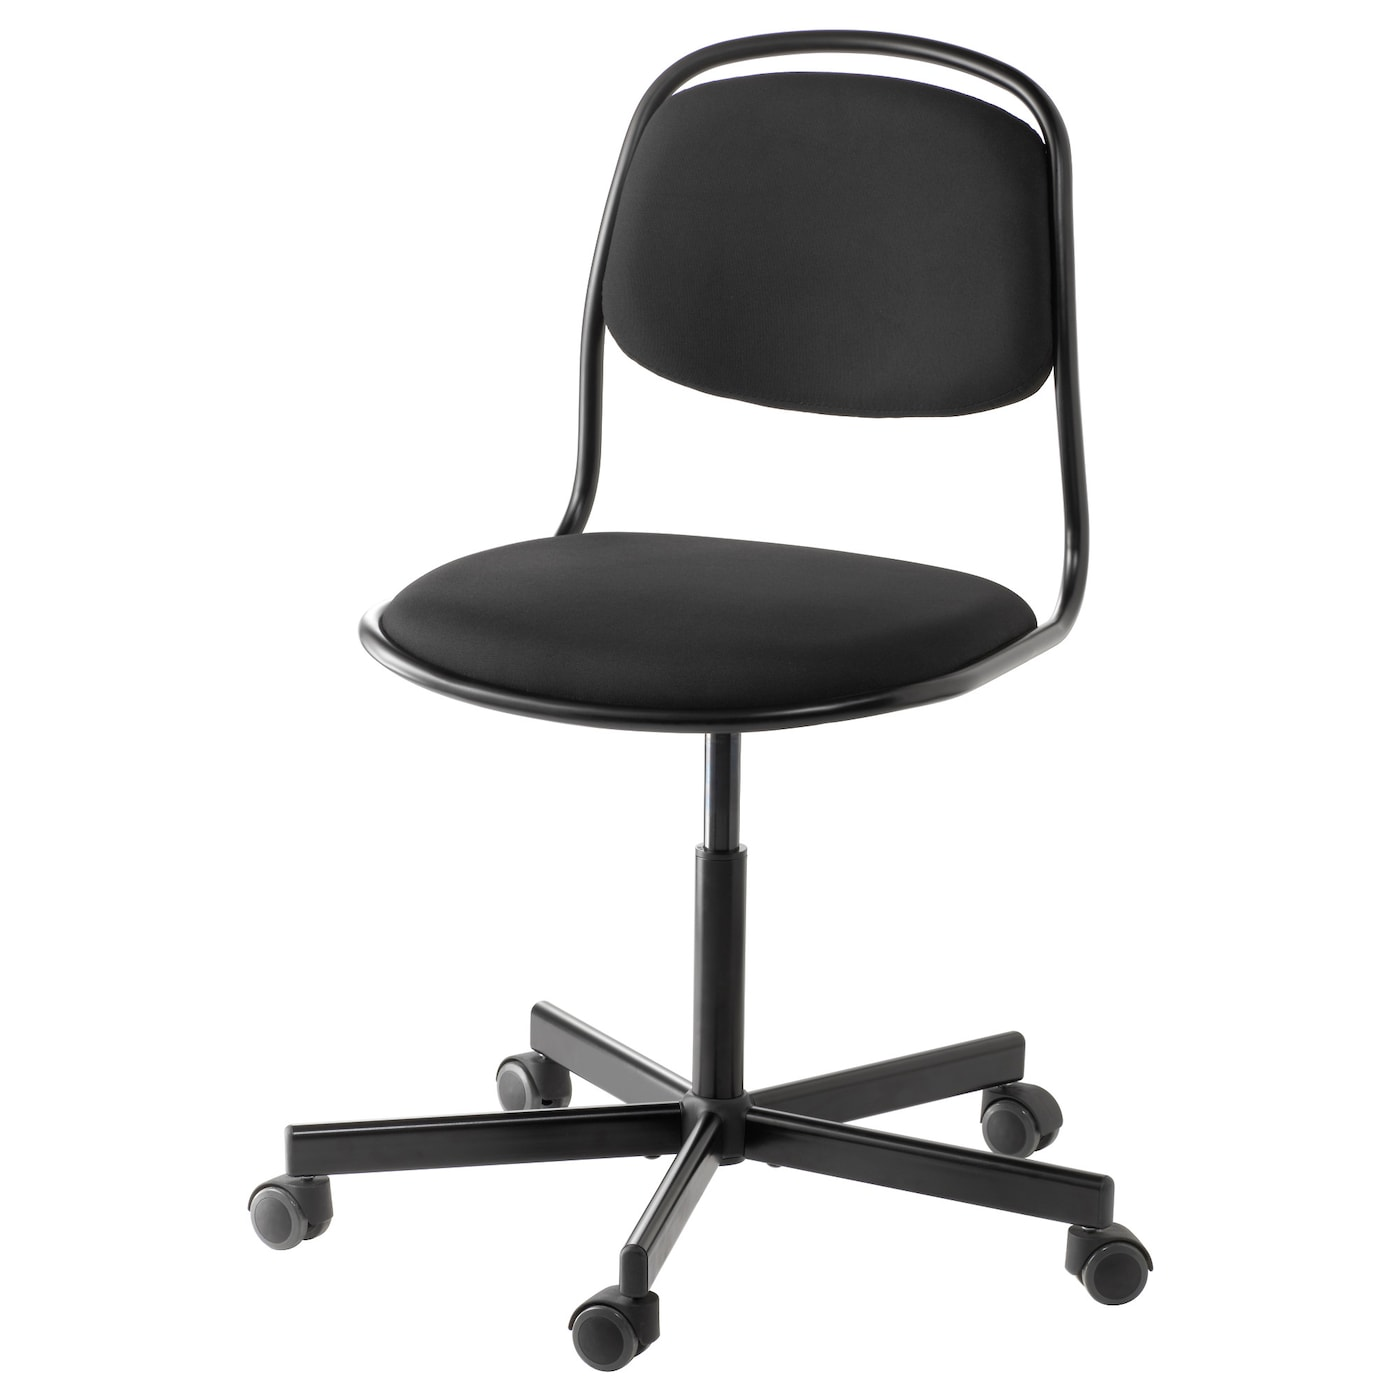 ikea chairs office. ikea rfjllsporren swivel chair you sit comfortably since the is adjustable in height ikea chairs office l